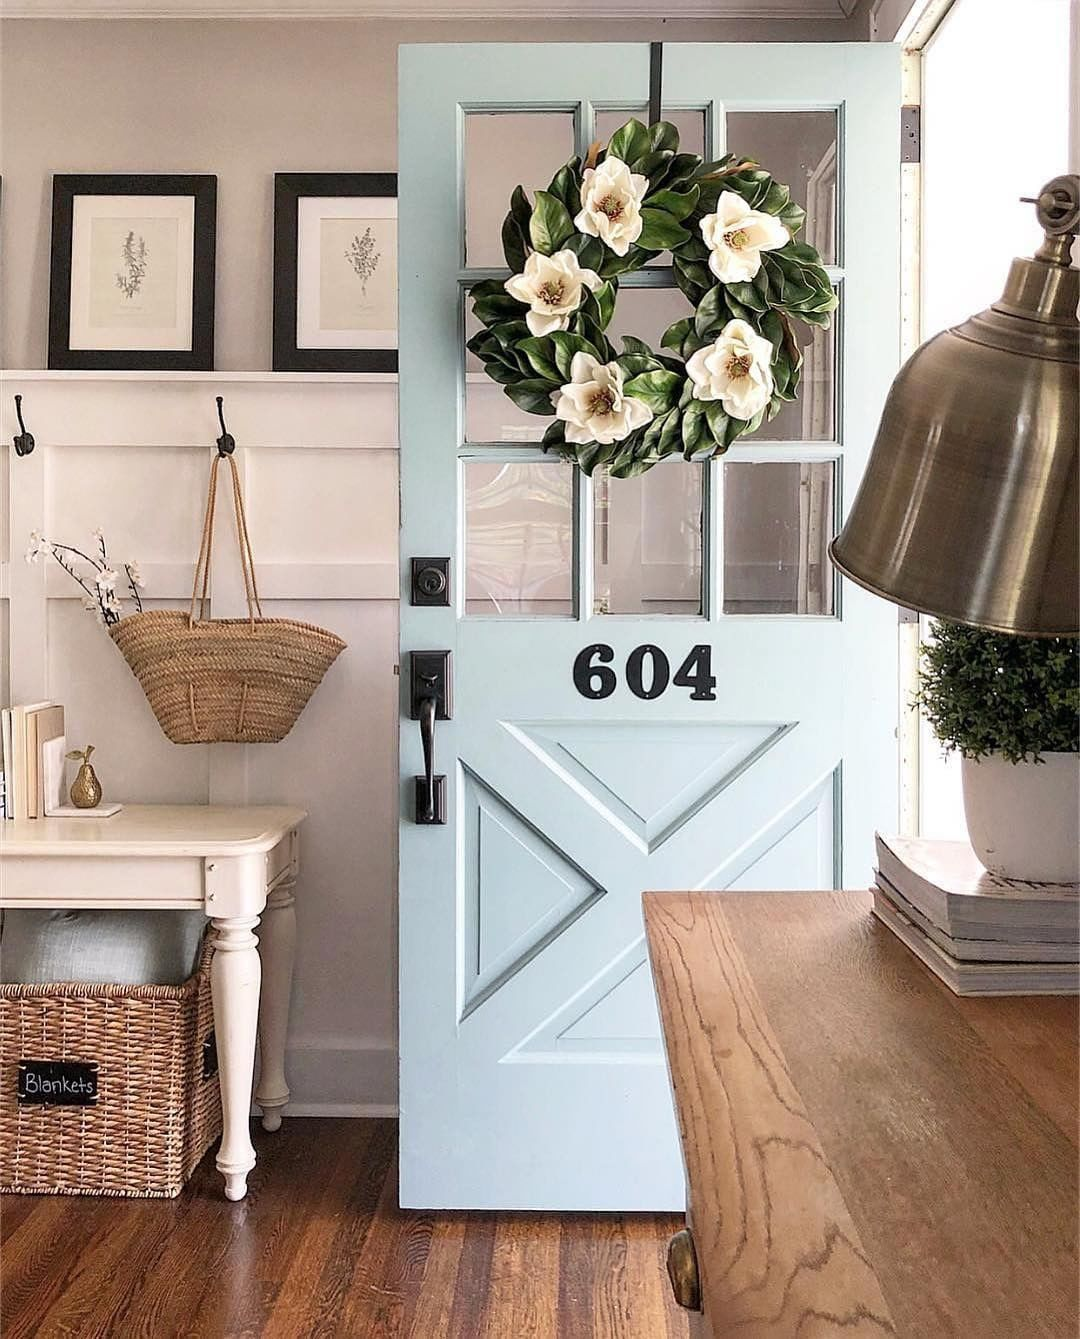 Bluebarnandcottage shows us that repurposing old to new can be the